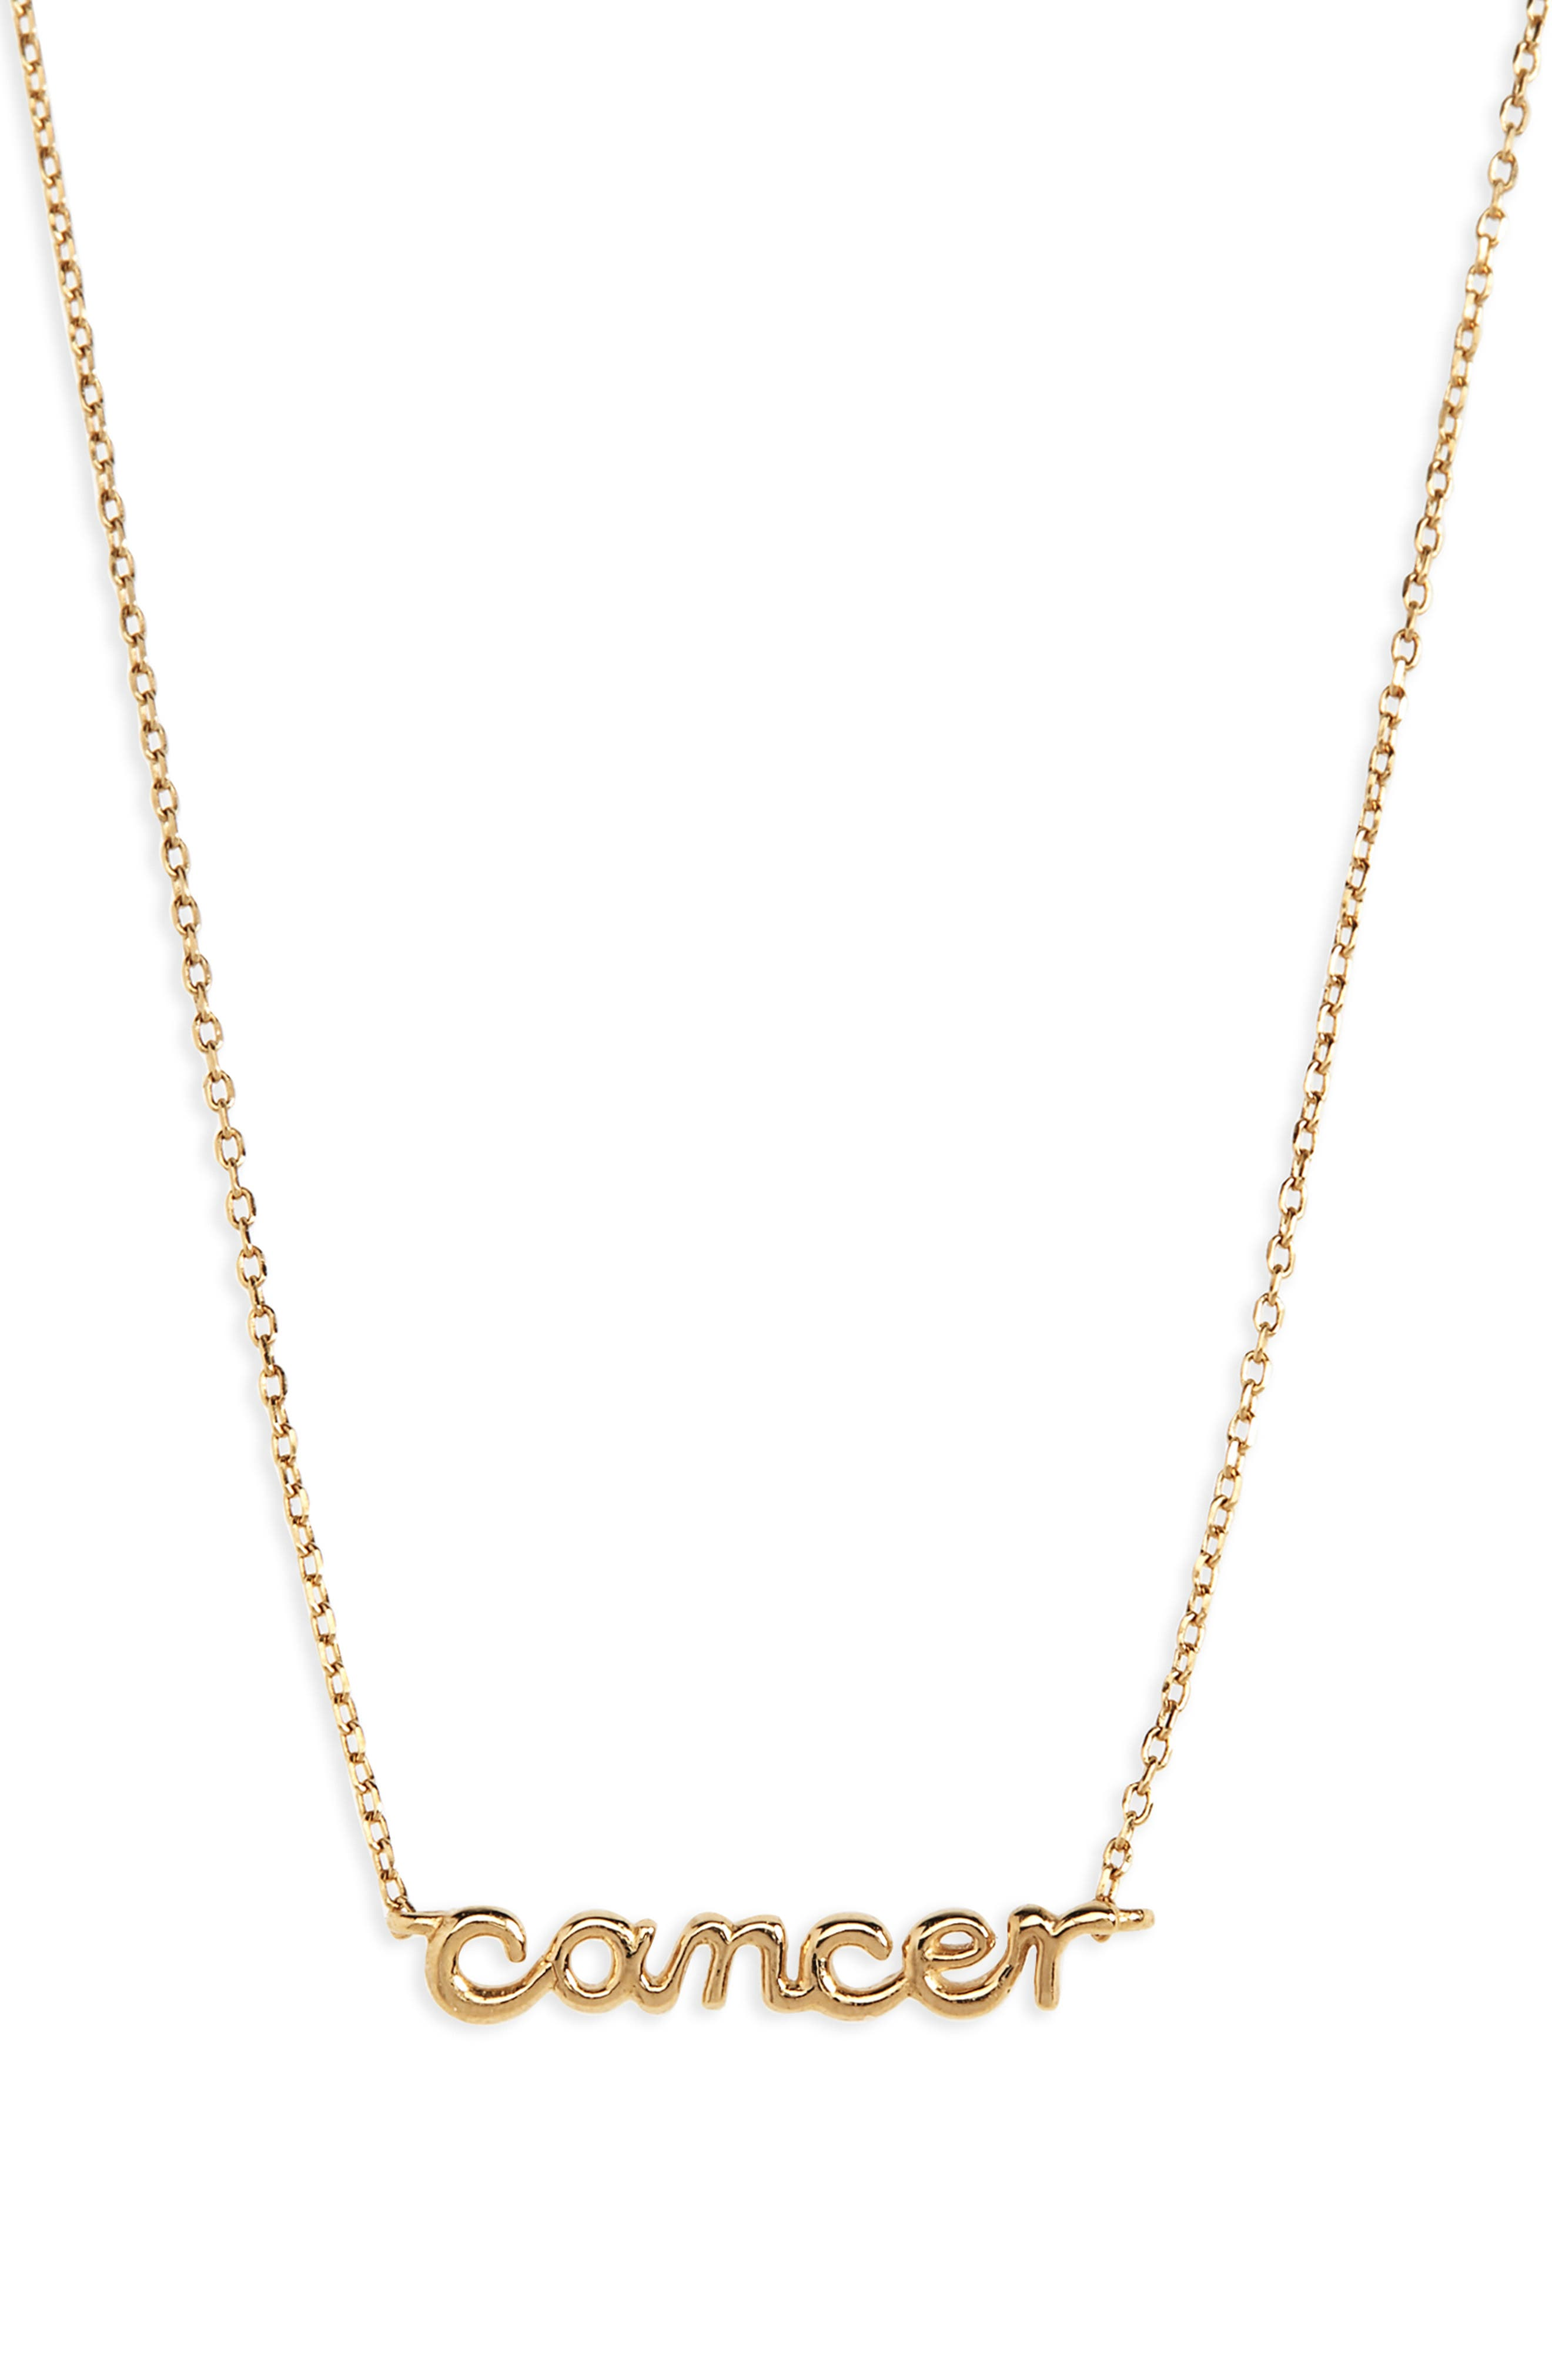 MADEWELL, Vermeil Astrological Sign Necklace, Main thumbnail 1, color, 710